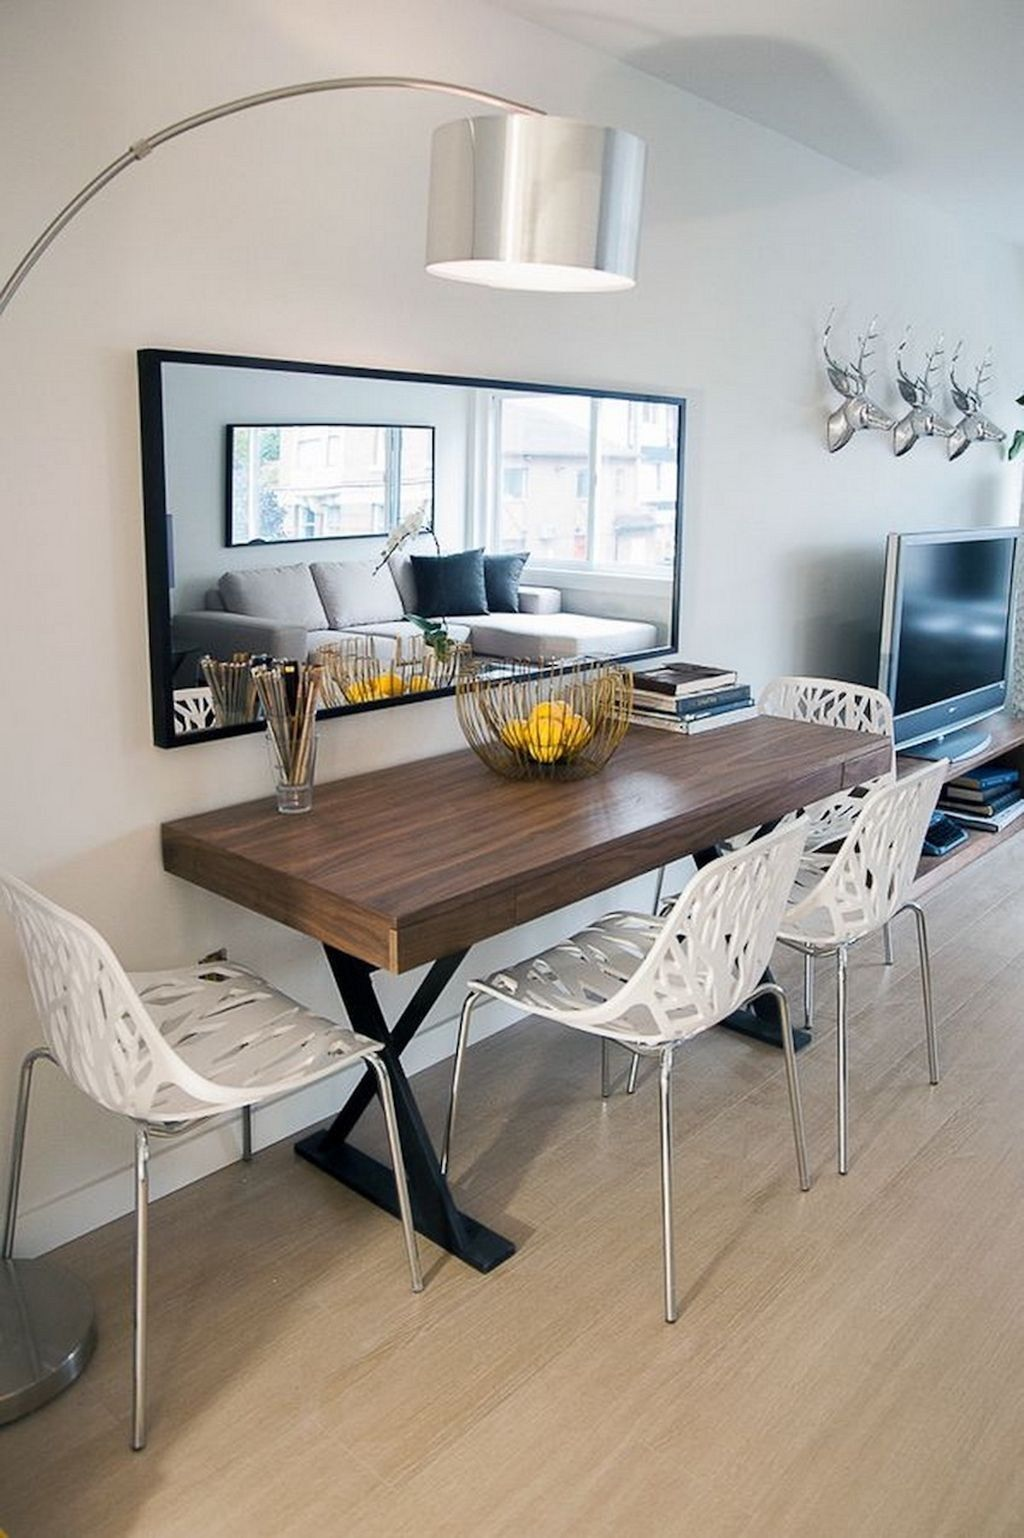 space saving living room decoration ideas for small apartment 16 narrow dining tables small on kitchen interior small space id=83968